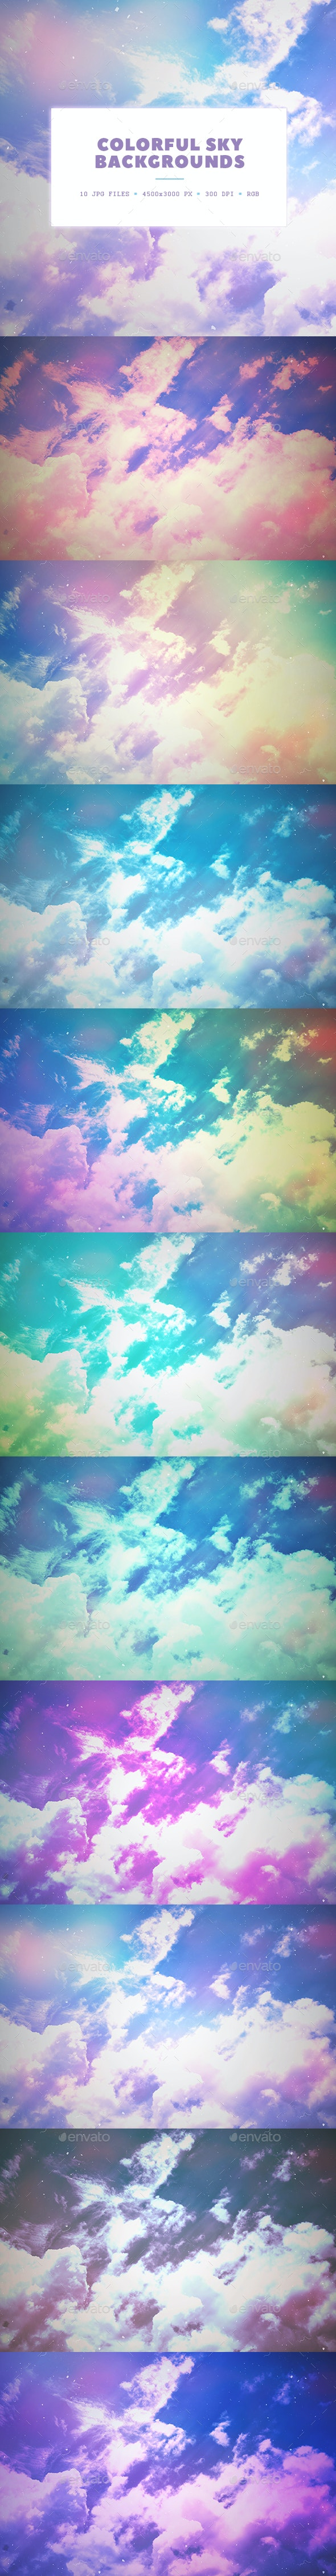 Colorful Sky Backgrounds - Nature Backgrounds